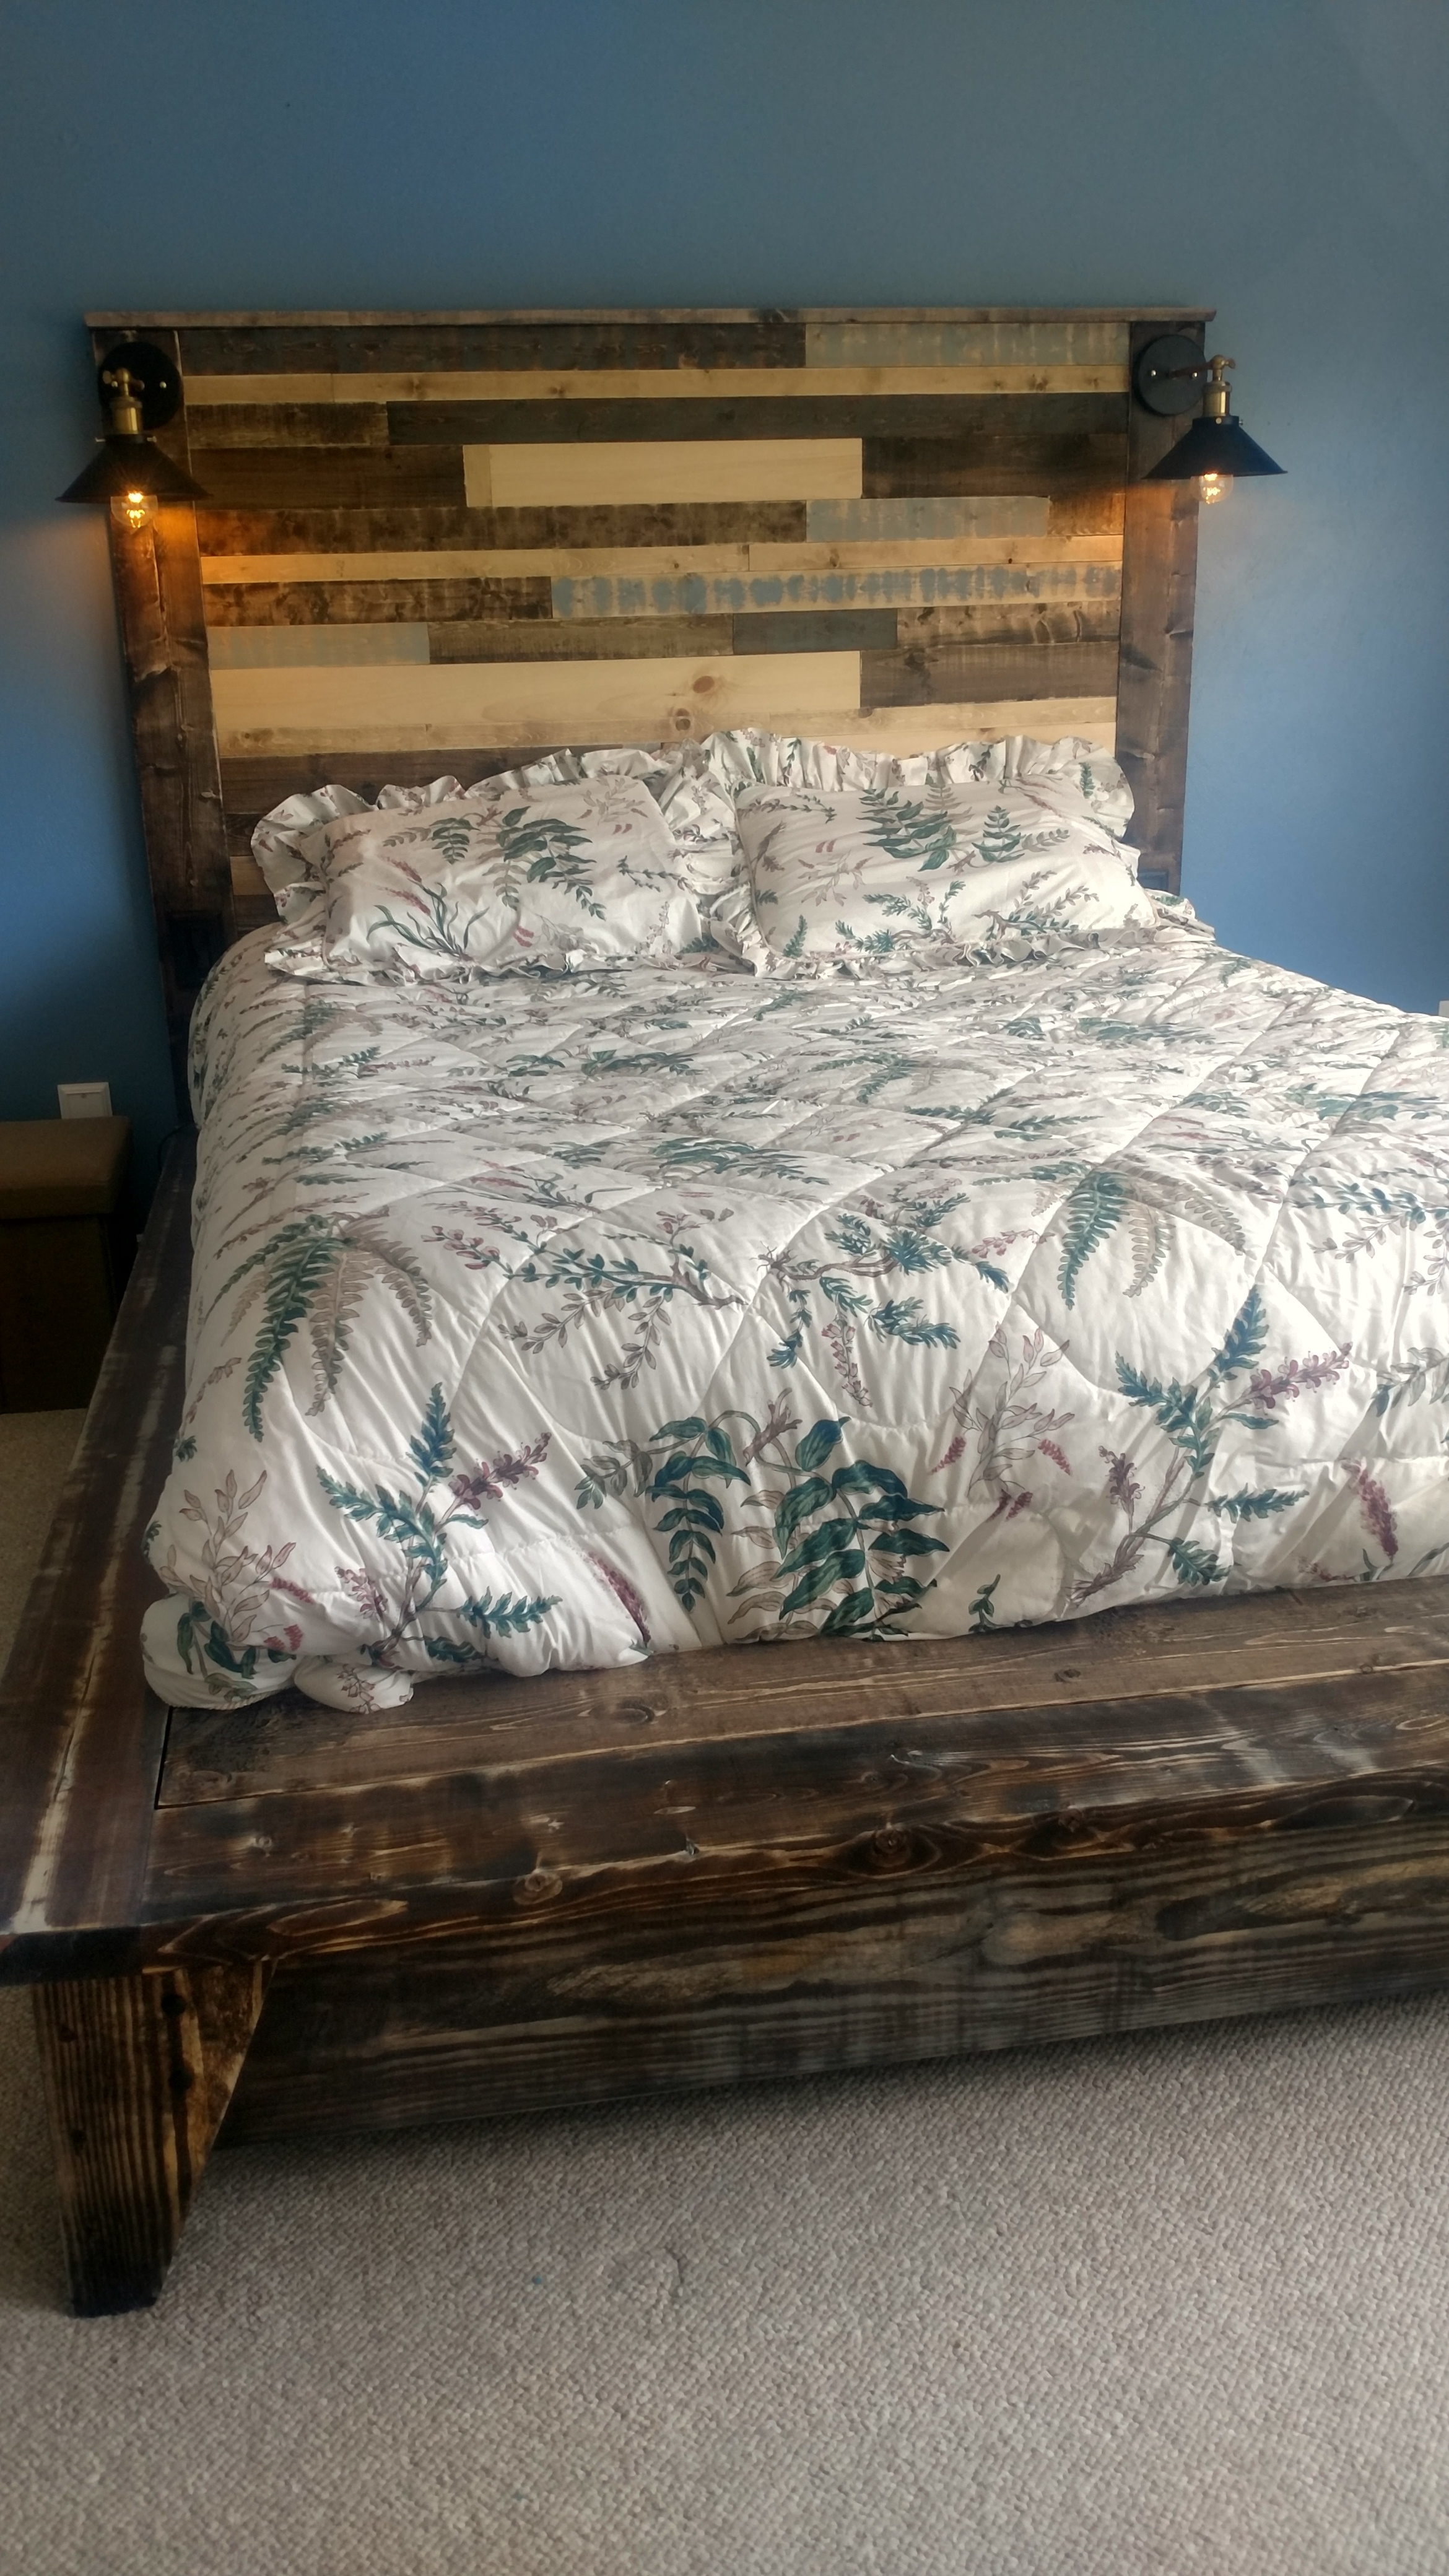 i just finished building my version of this bed i must say my wife and i are well pleased with the results